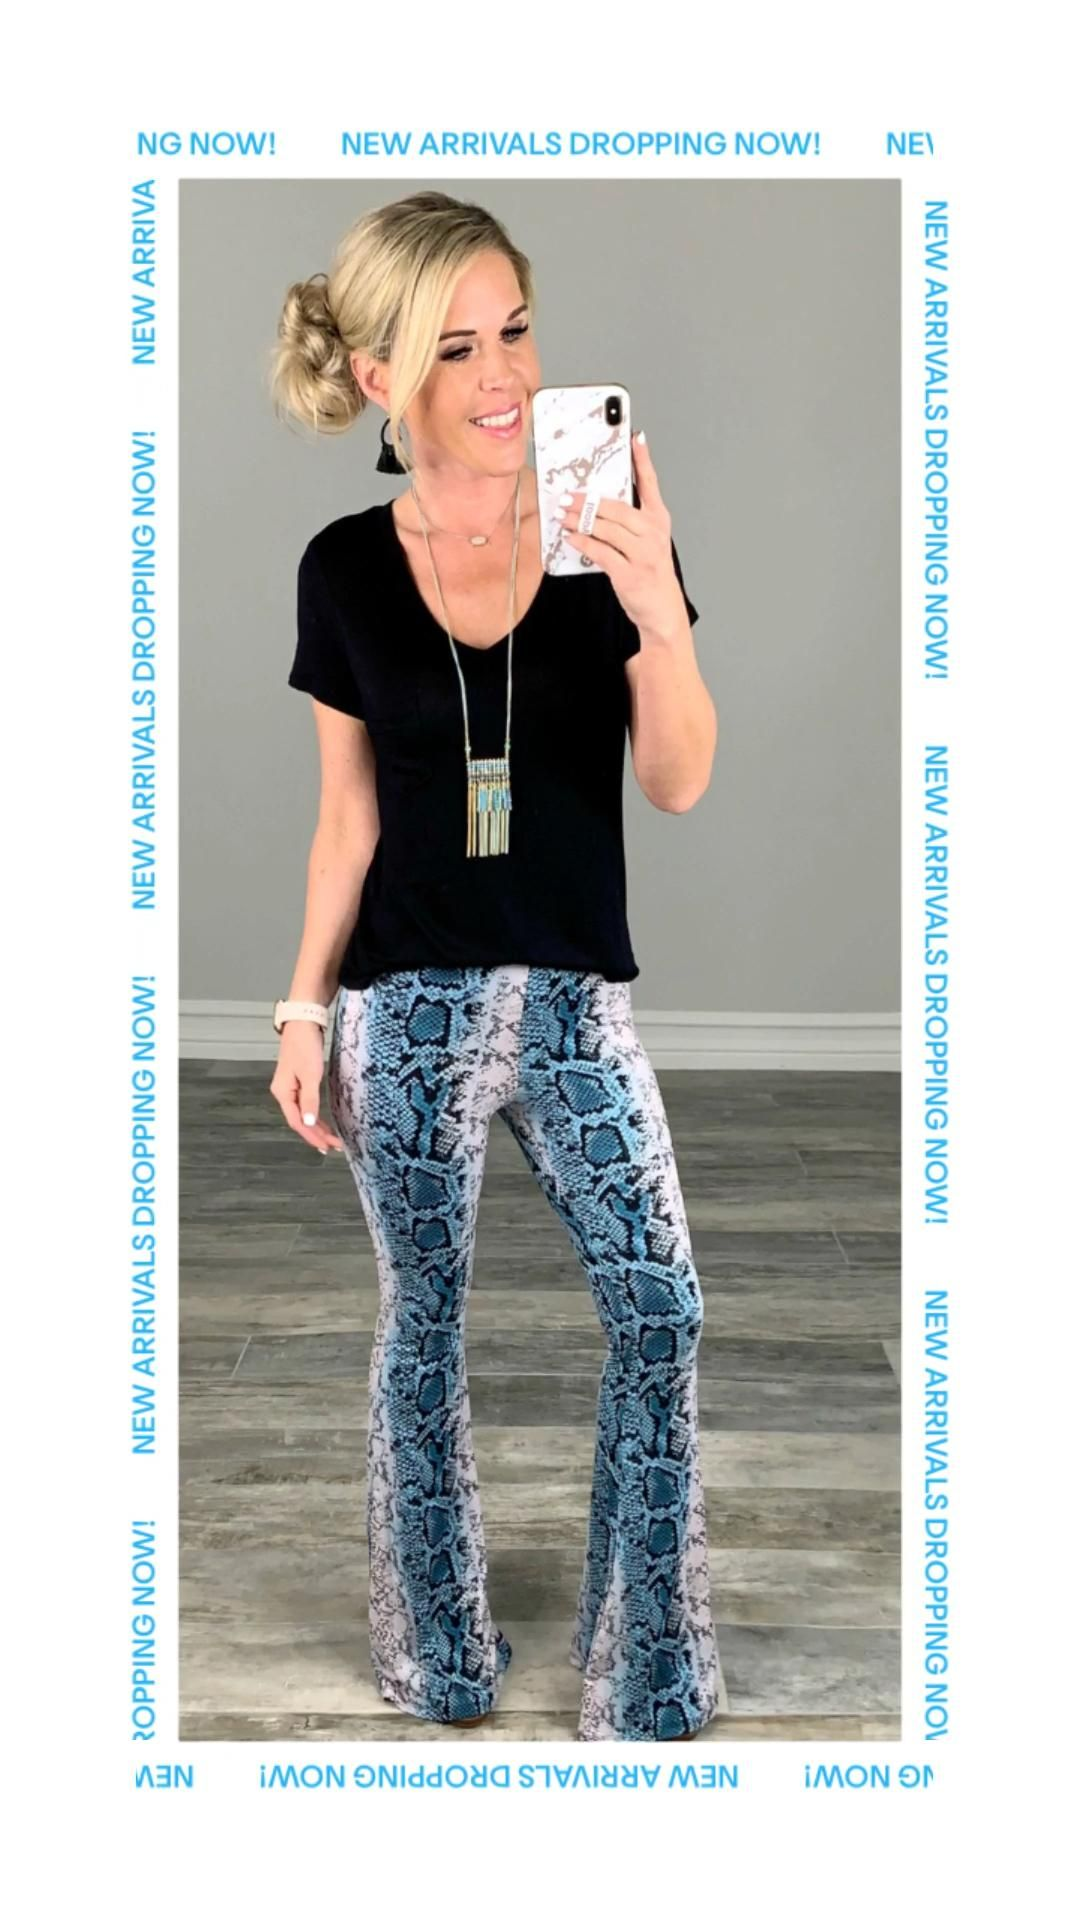 Never Grow Up Snake Print Flare Pants - Blue - privityboutique -   18 fall outfits 2020 for women over 50 ideas